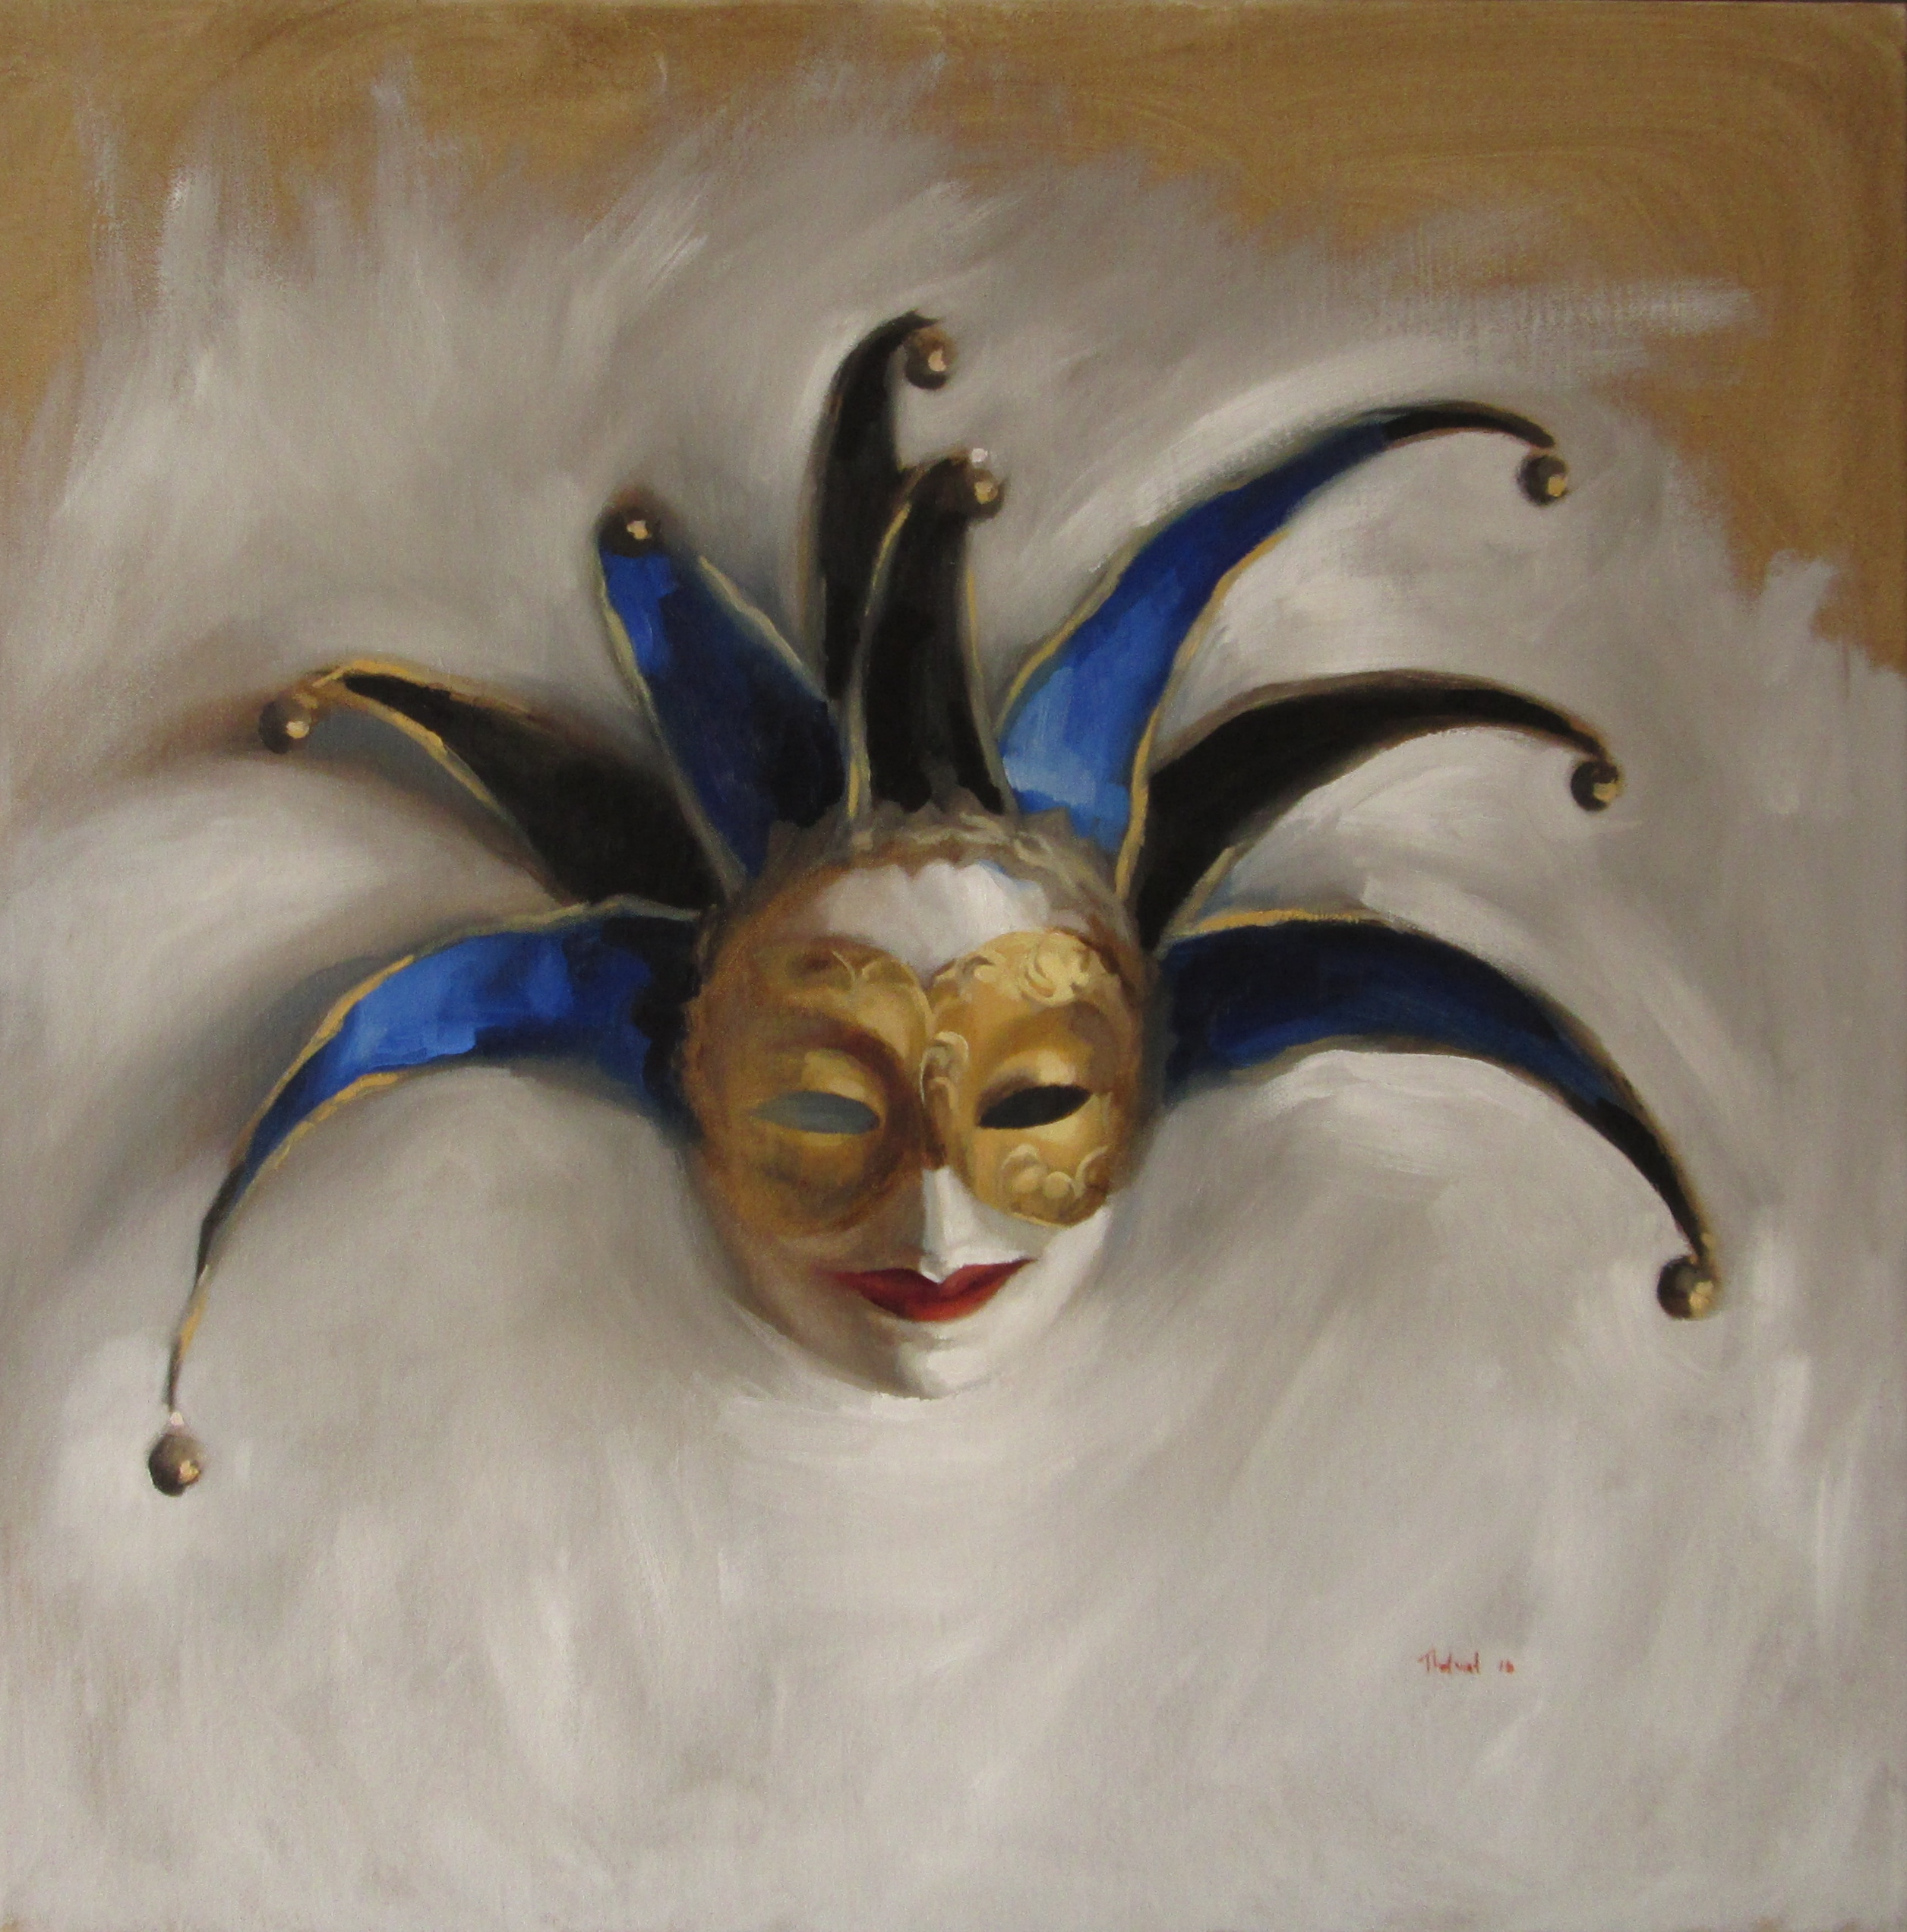 THE VENETIAN MASK (sold)